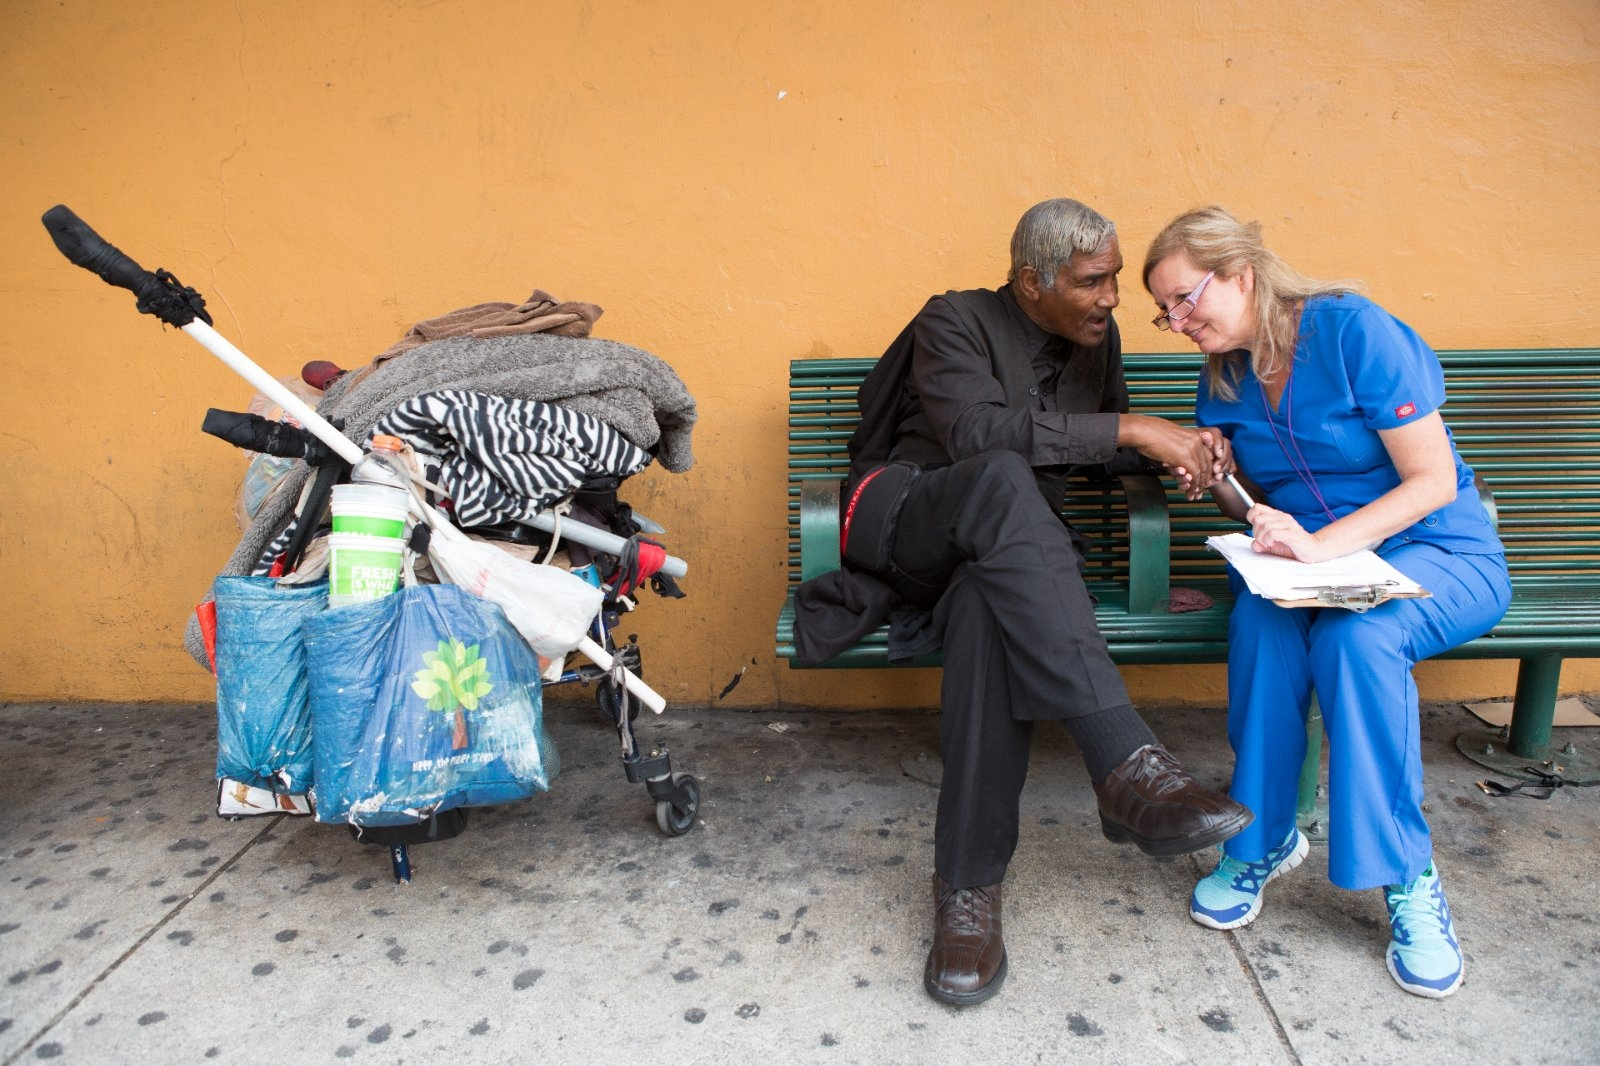 An outreach health worker speaks with a homeless man.